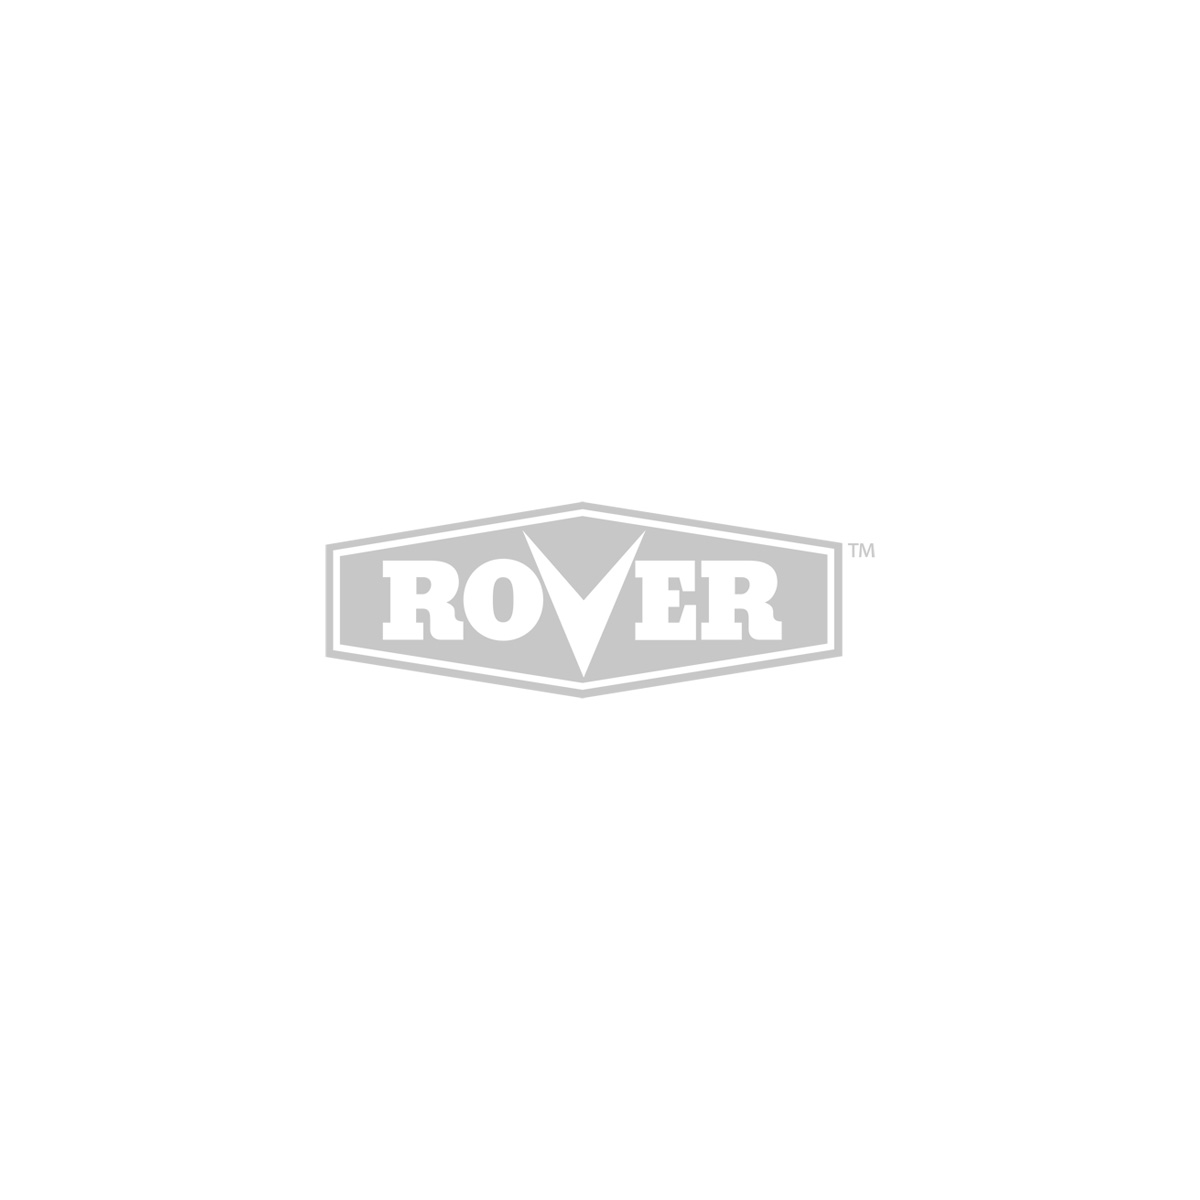 Comfort grip throttle for ease of use